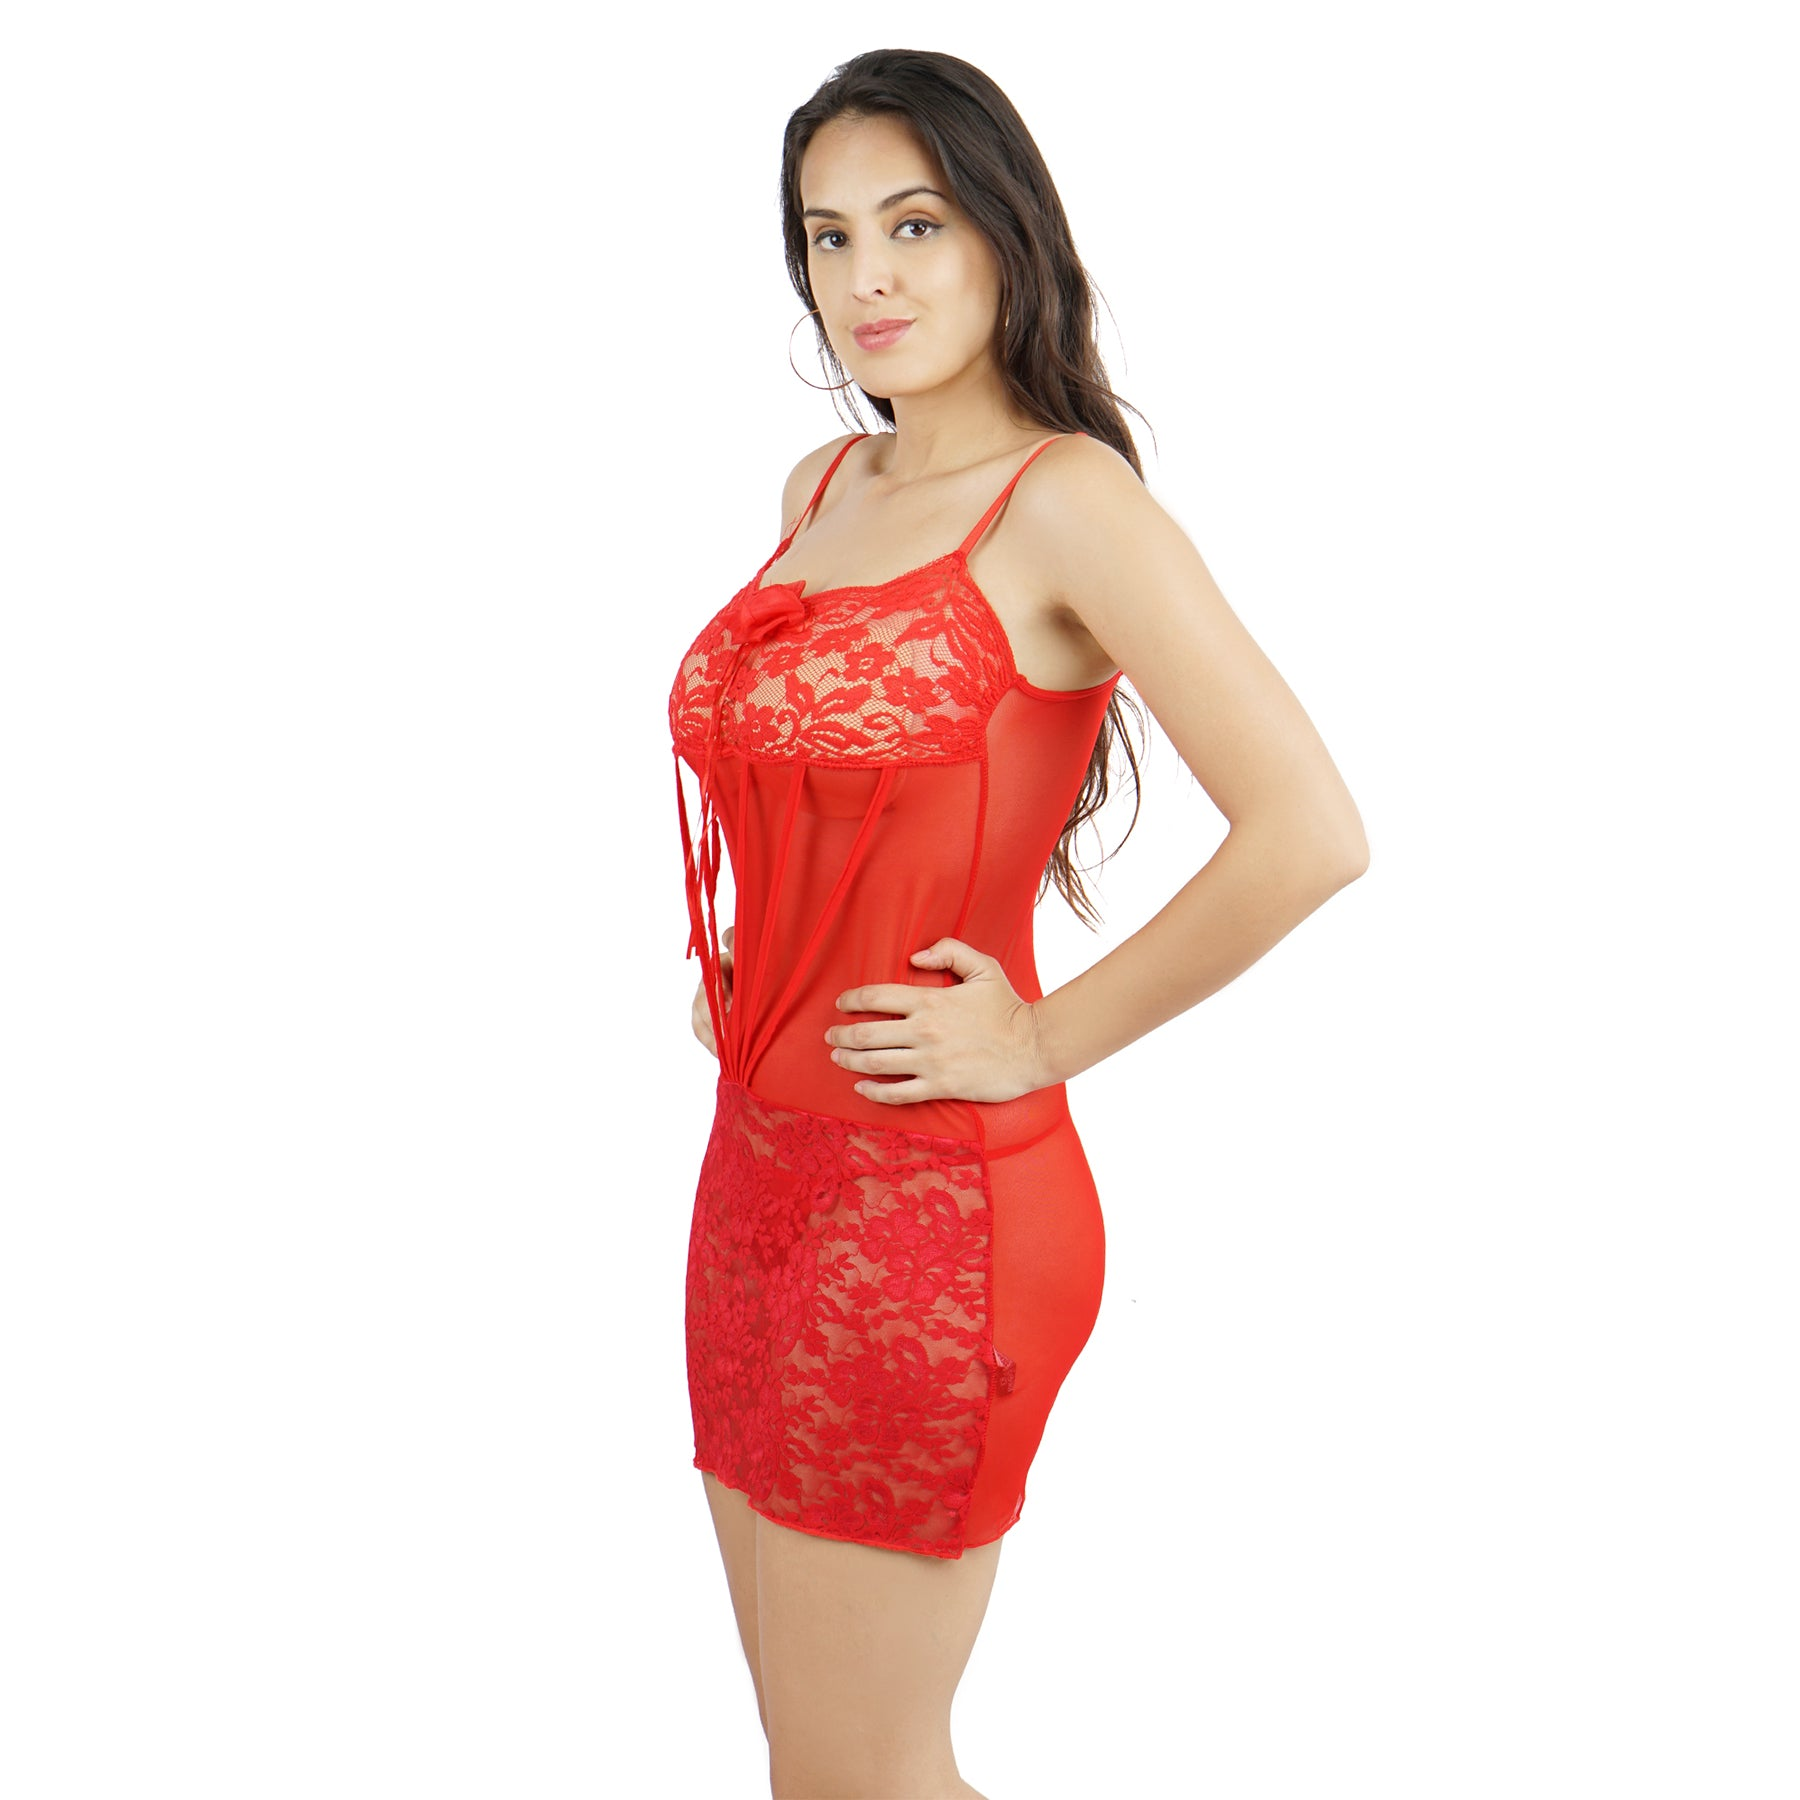 Ficuster Square Neck Red Babydoll Nightwear